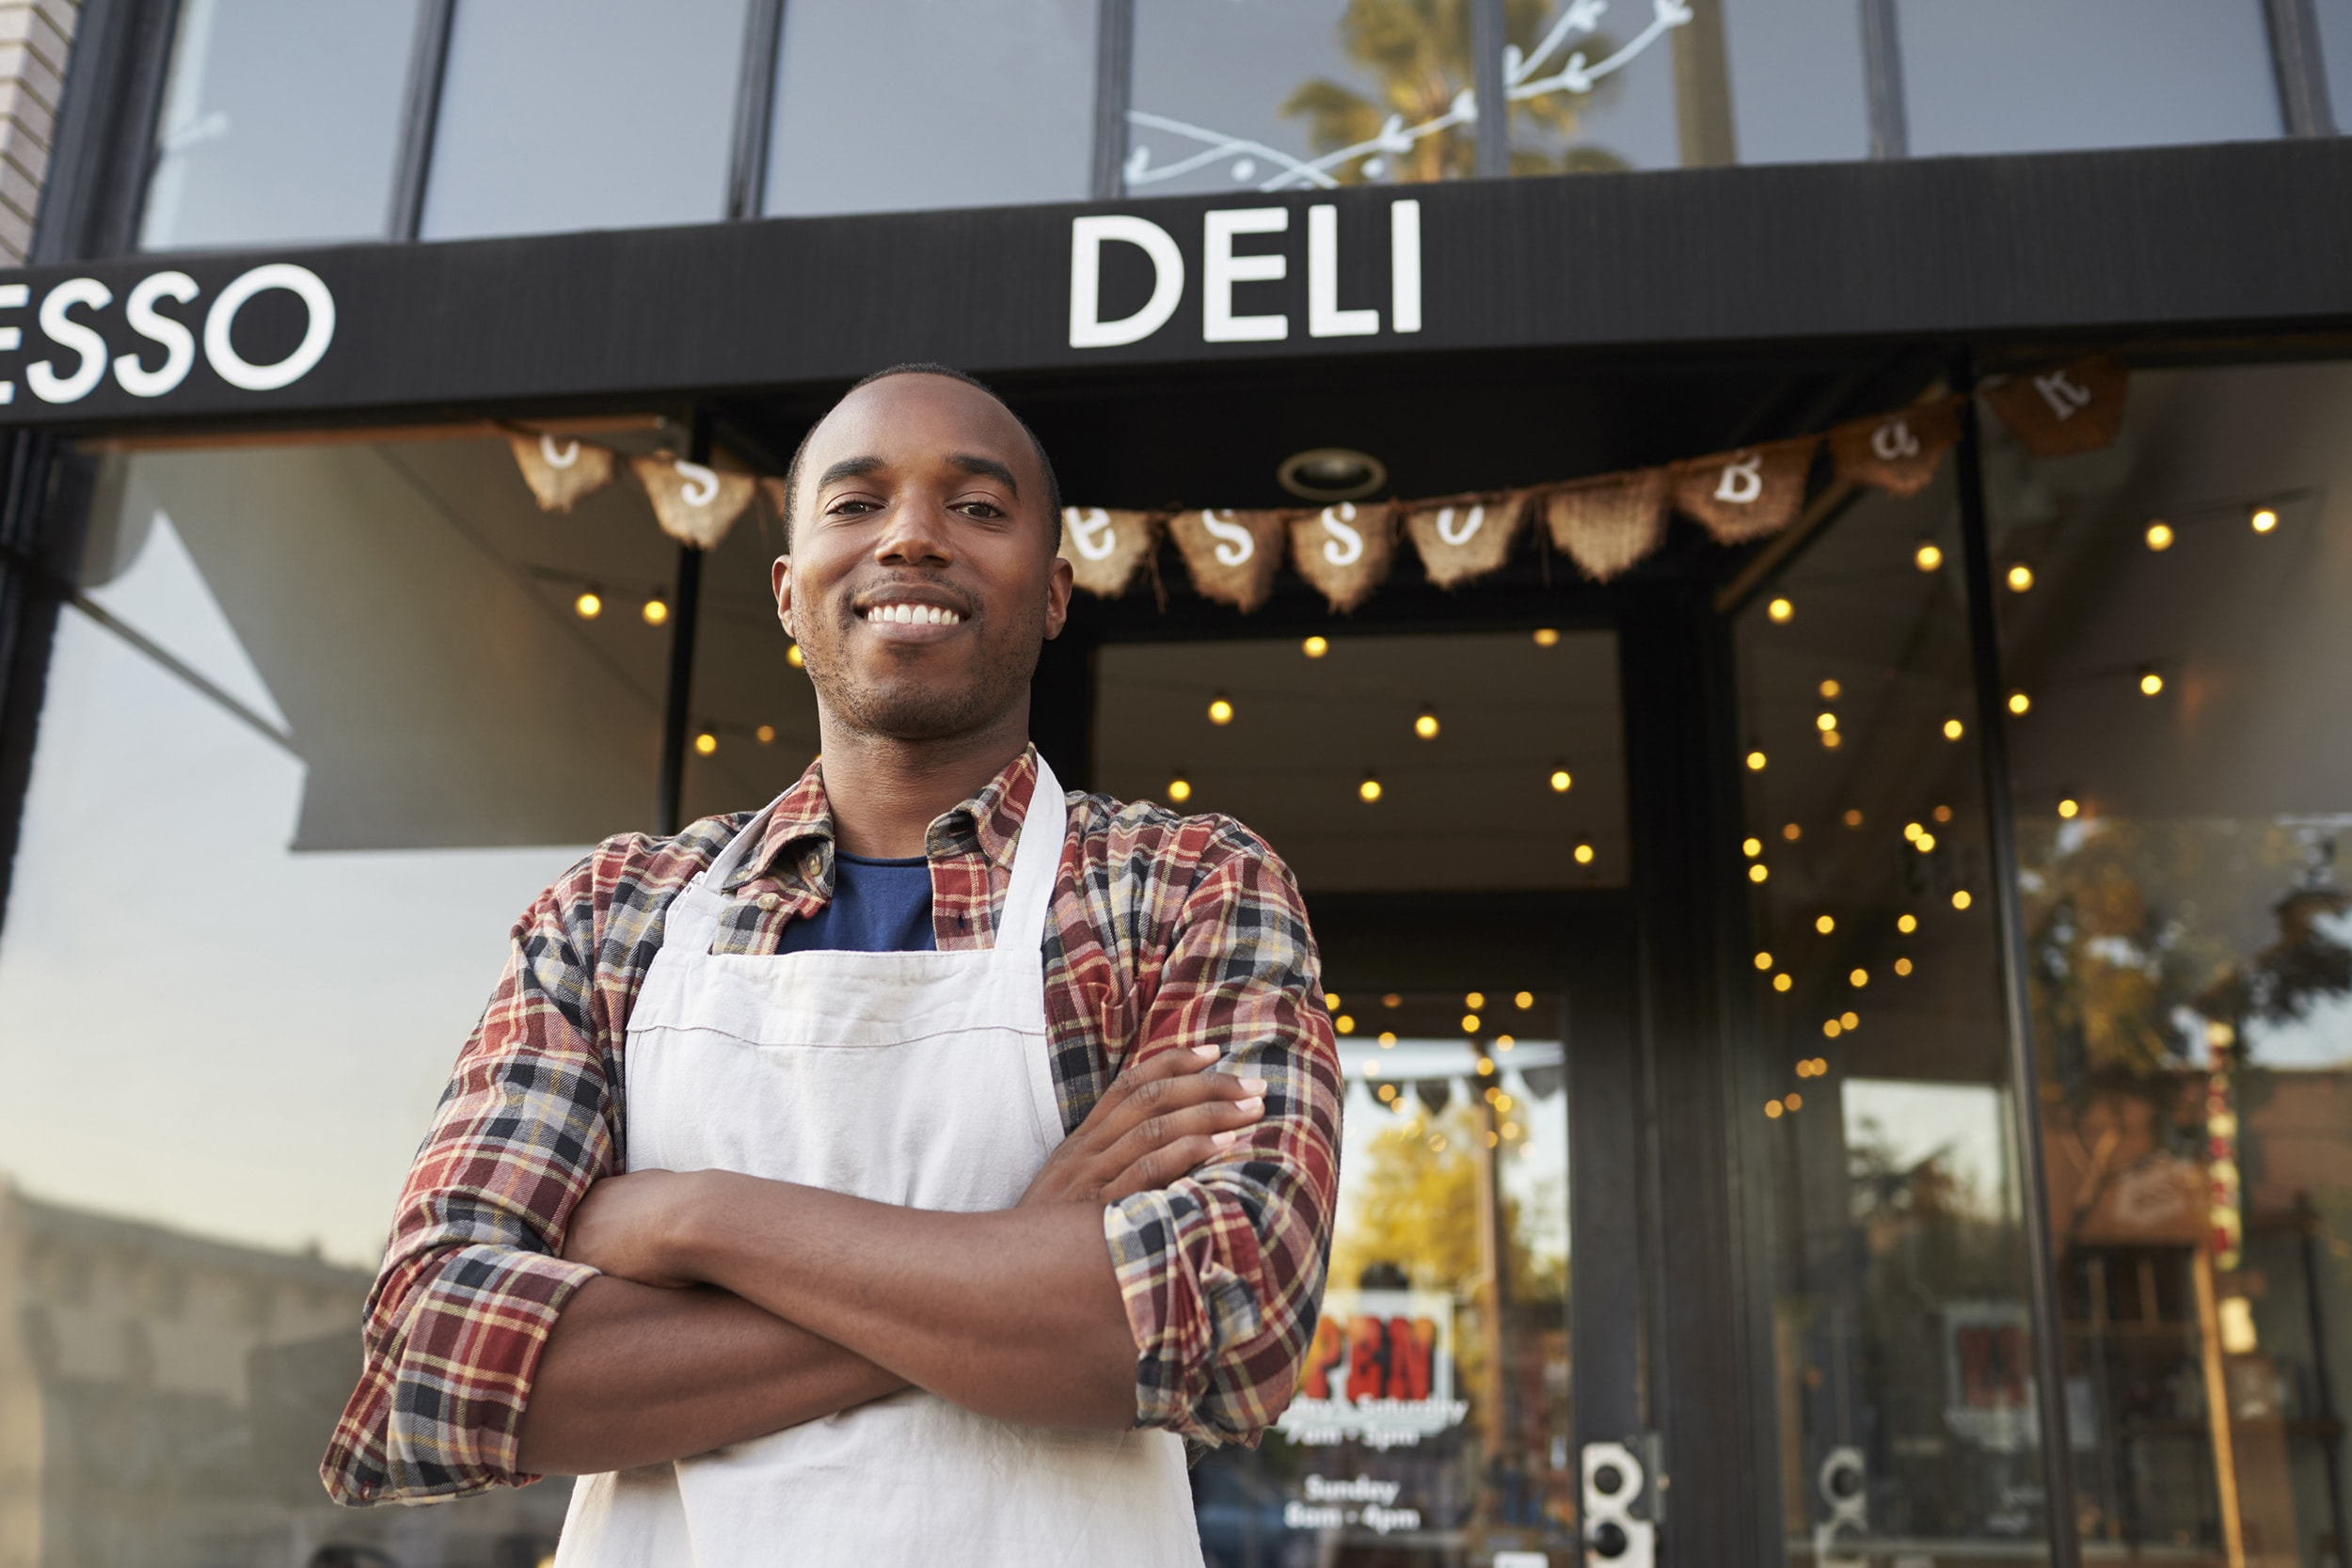 Man Standing in Front of Deli